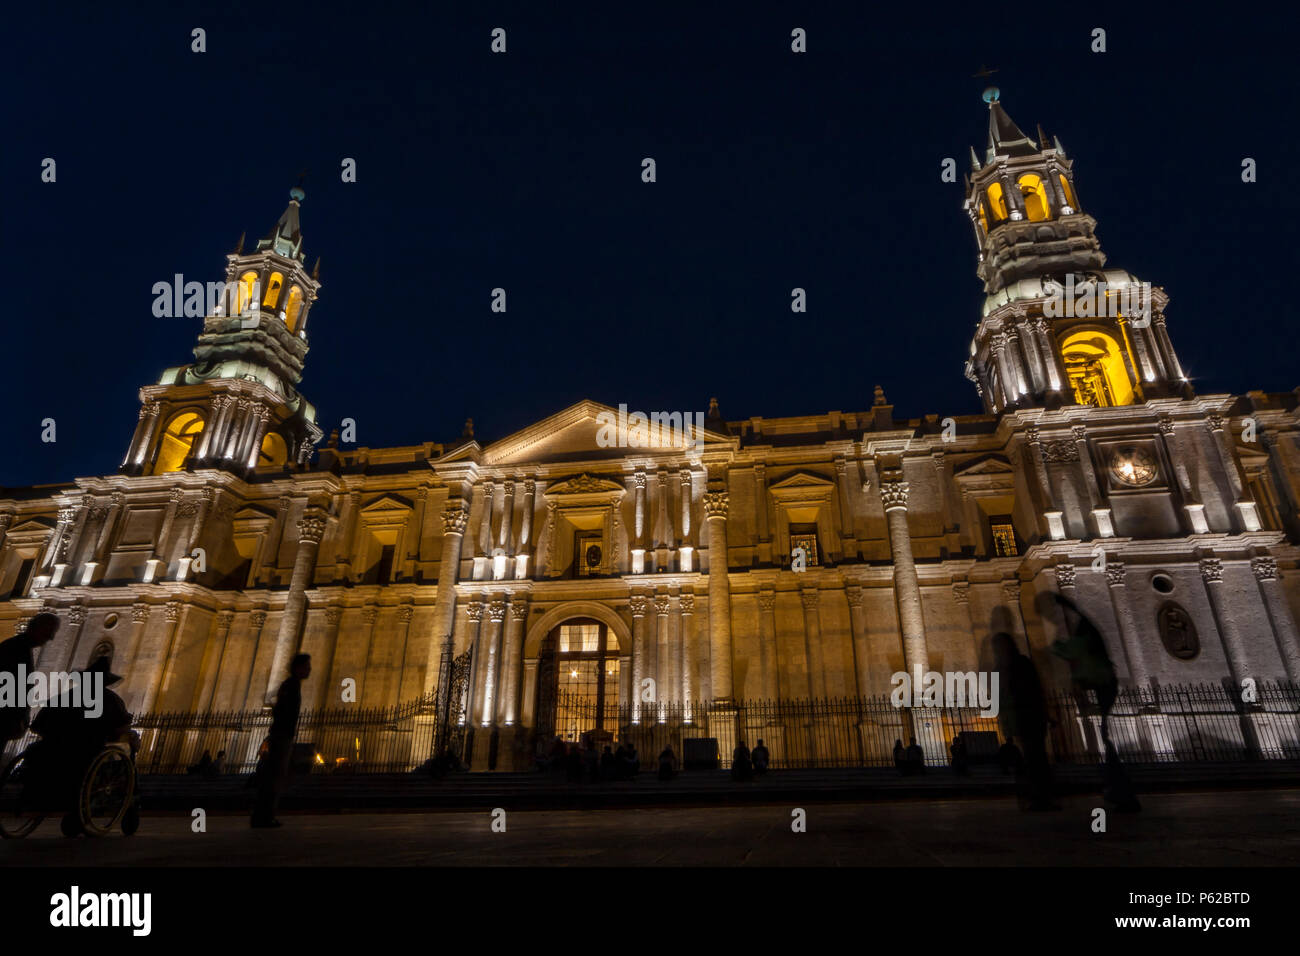 "The Basilica Cathedral of Arequipa is located in the ""Plaza de Armas"" of the city of Arequipa, province of Arequipa, Peru. Stock Photo"